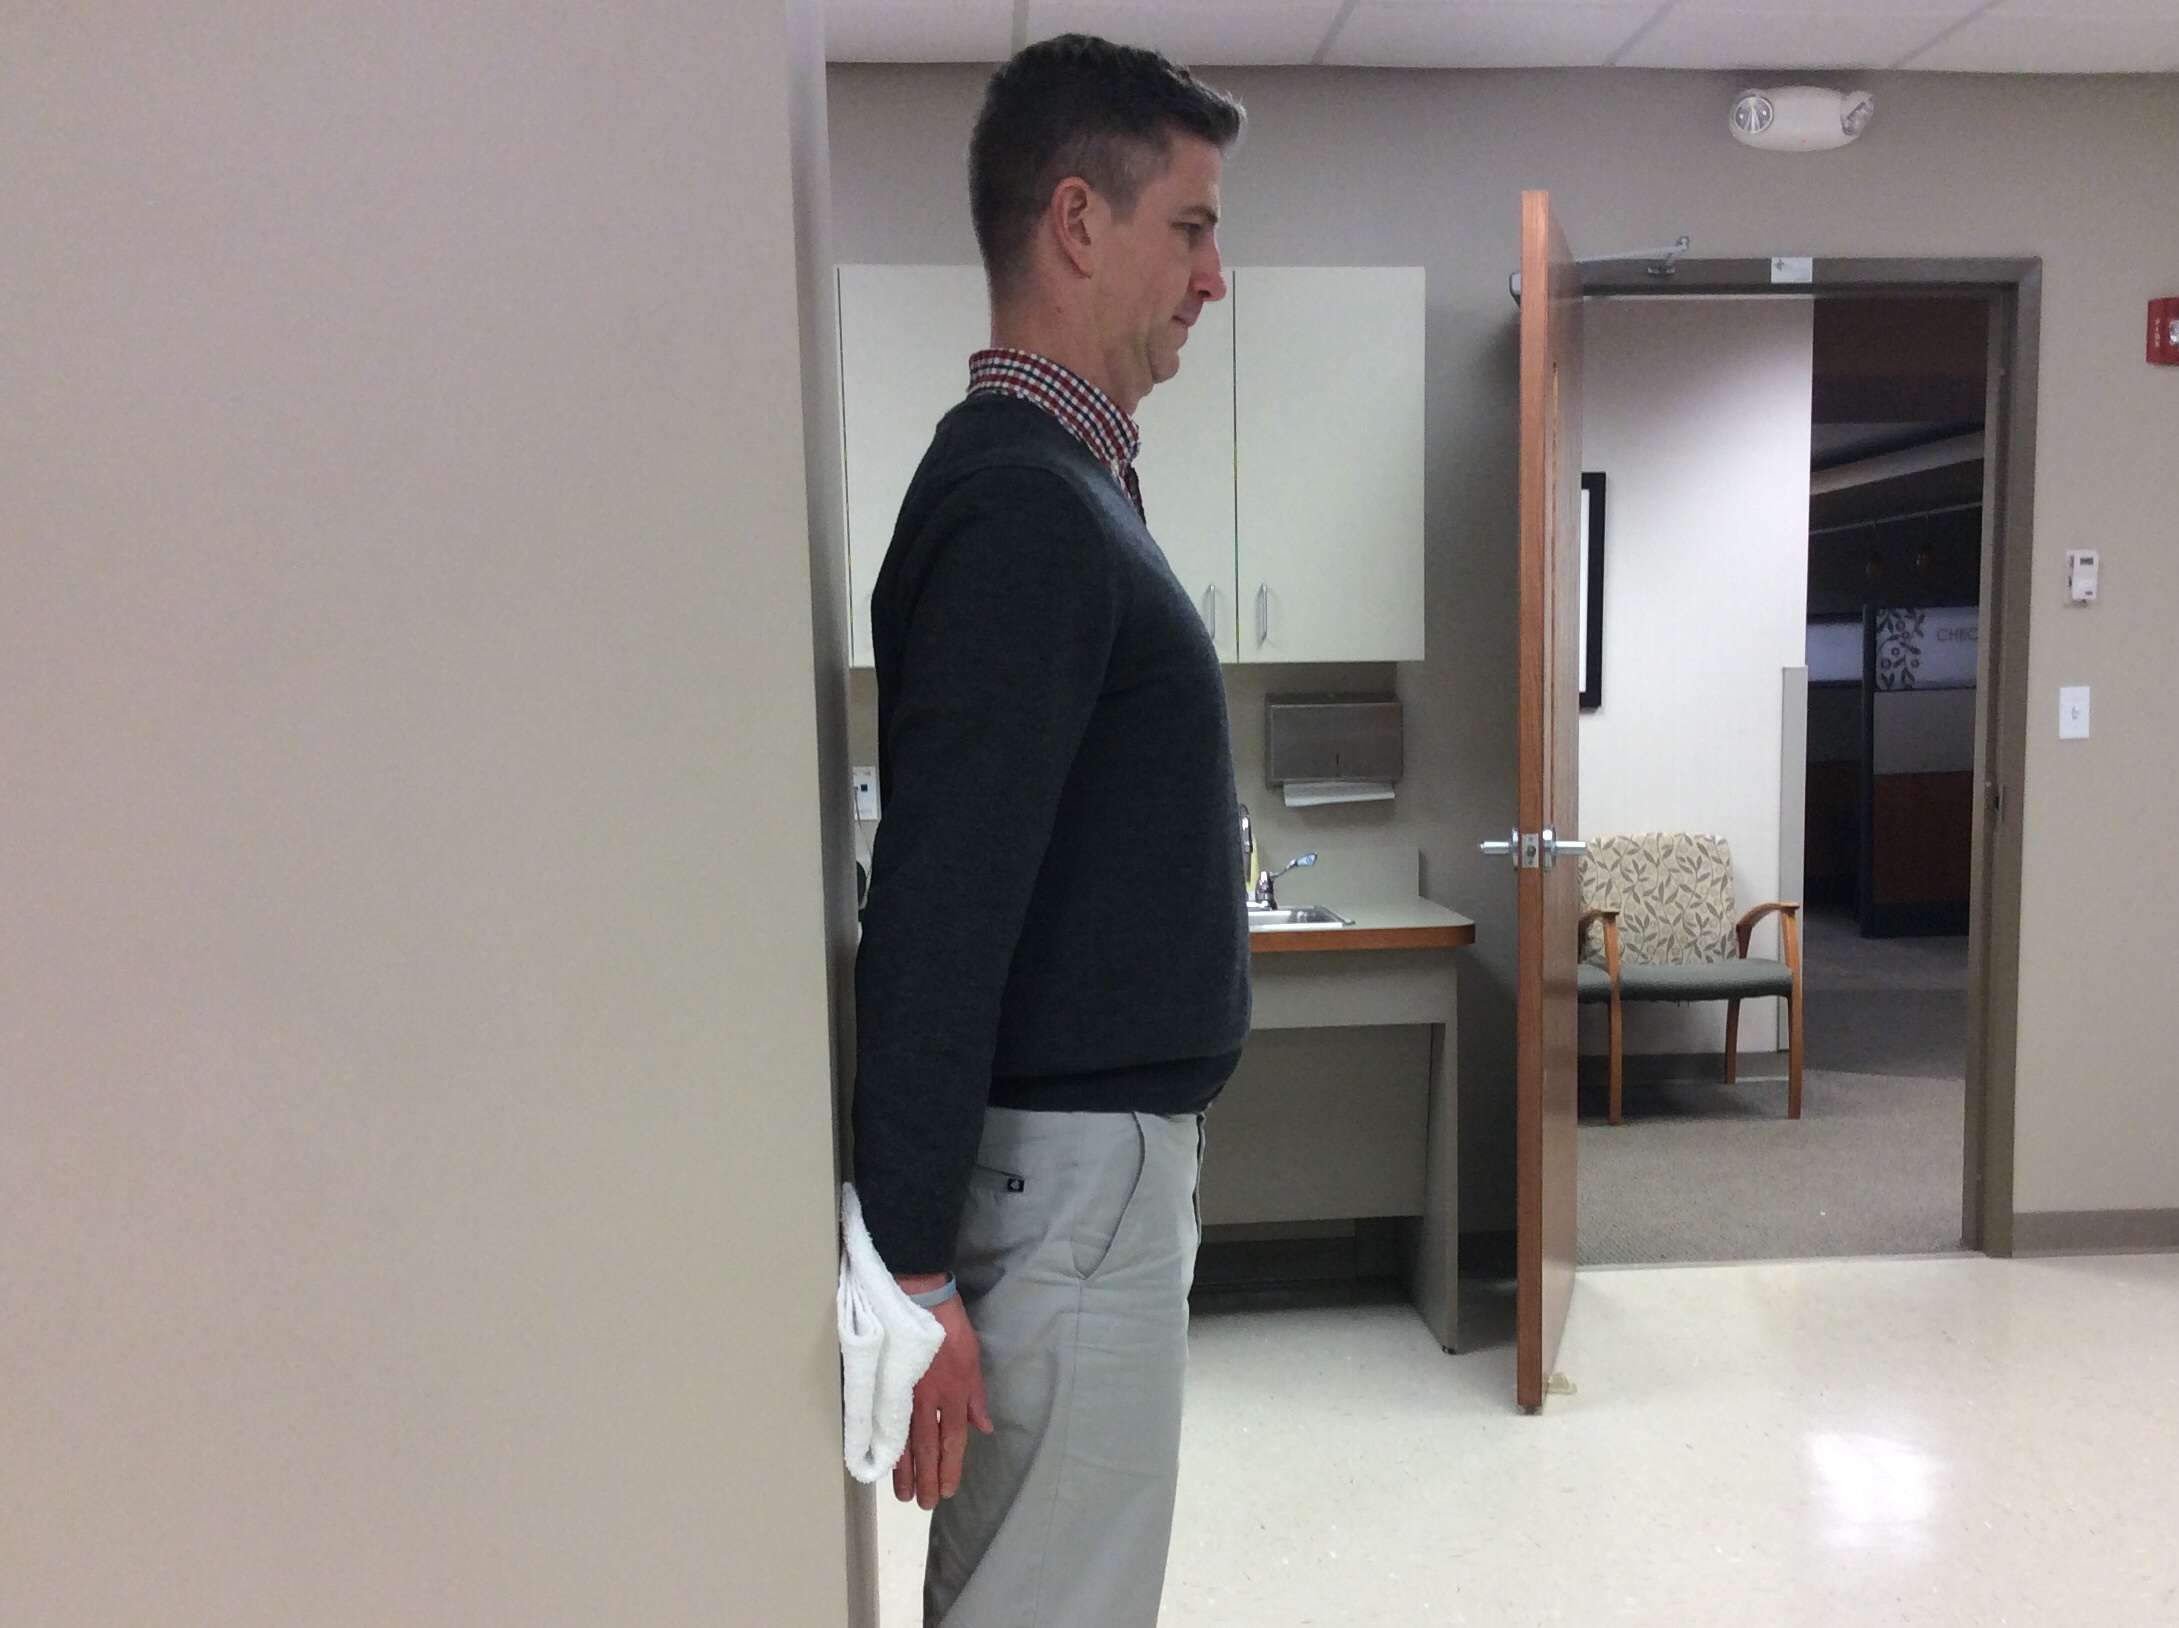 Physical therapy shoulder isometric extension exercise.